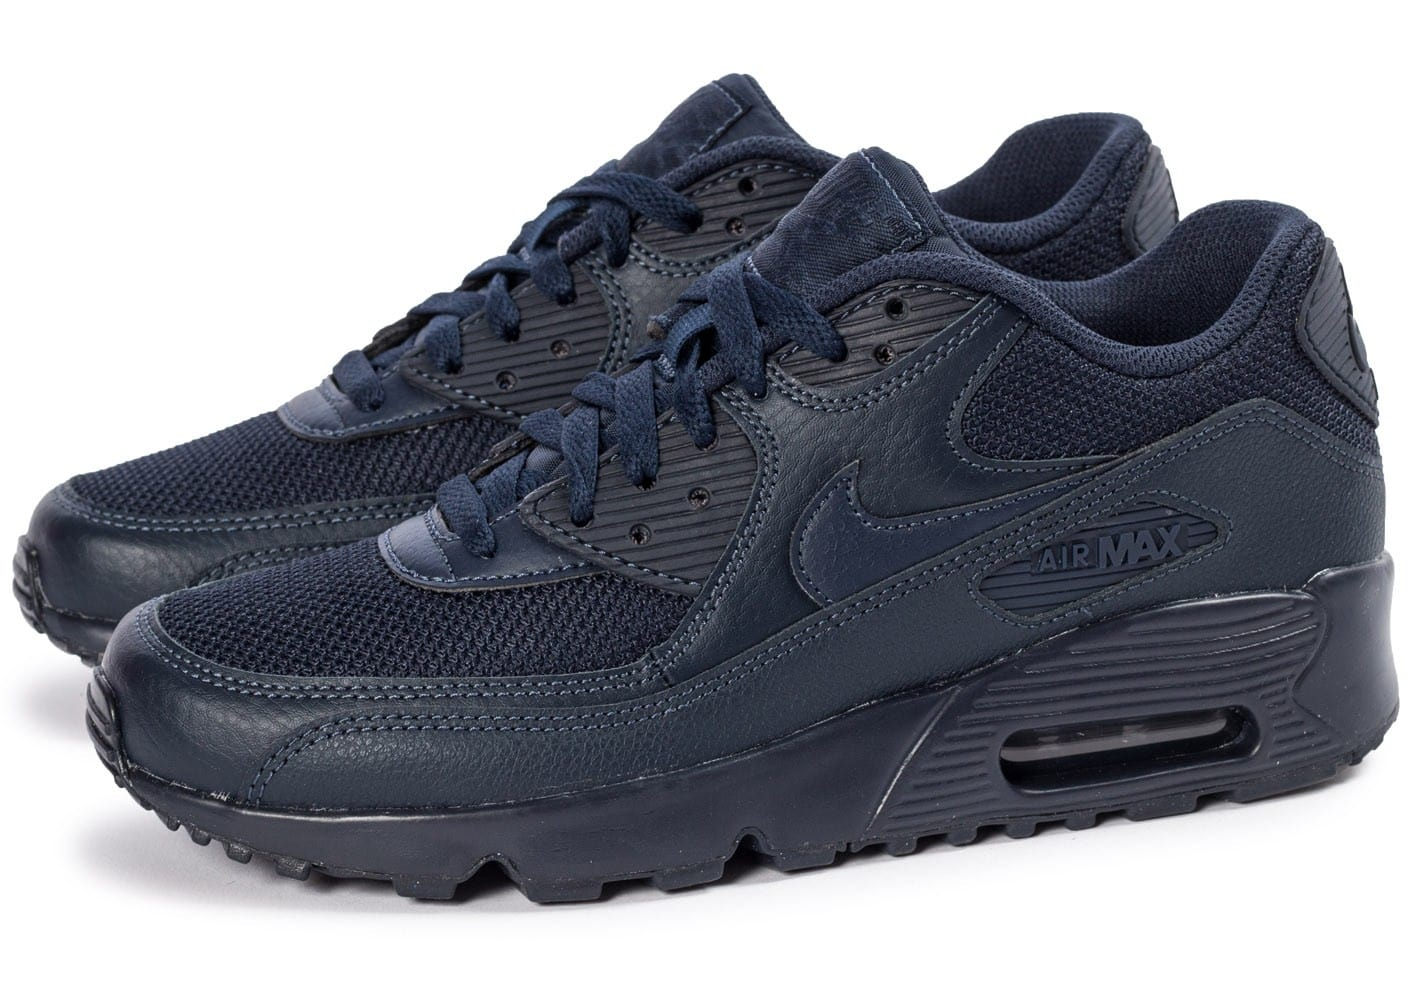 new product 1adb9 561cb ... chaussures nike air max 90 mesh junior bleu marine vue par paire )